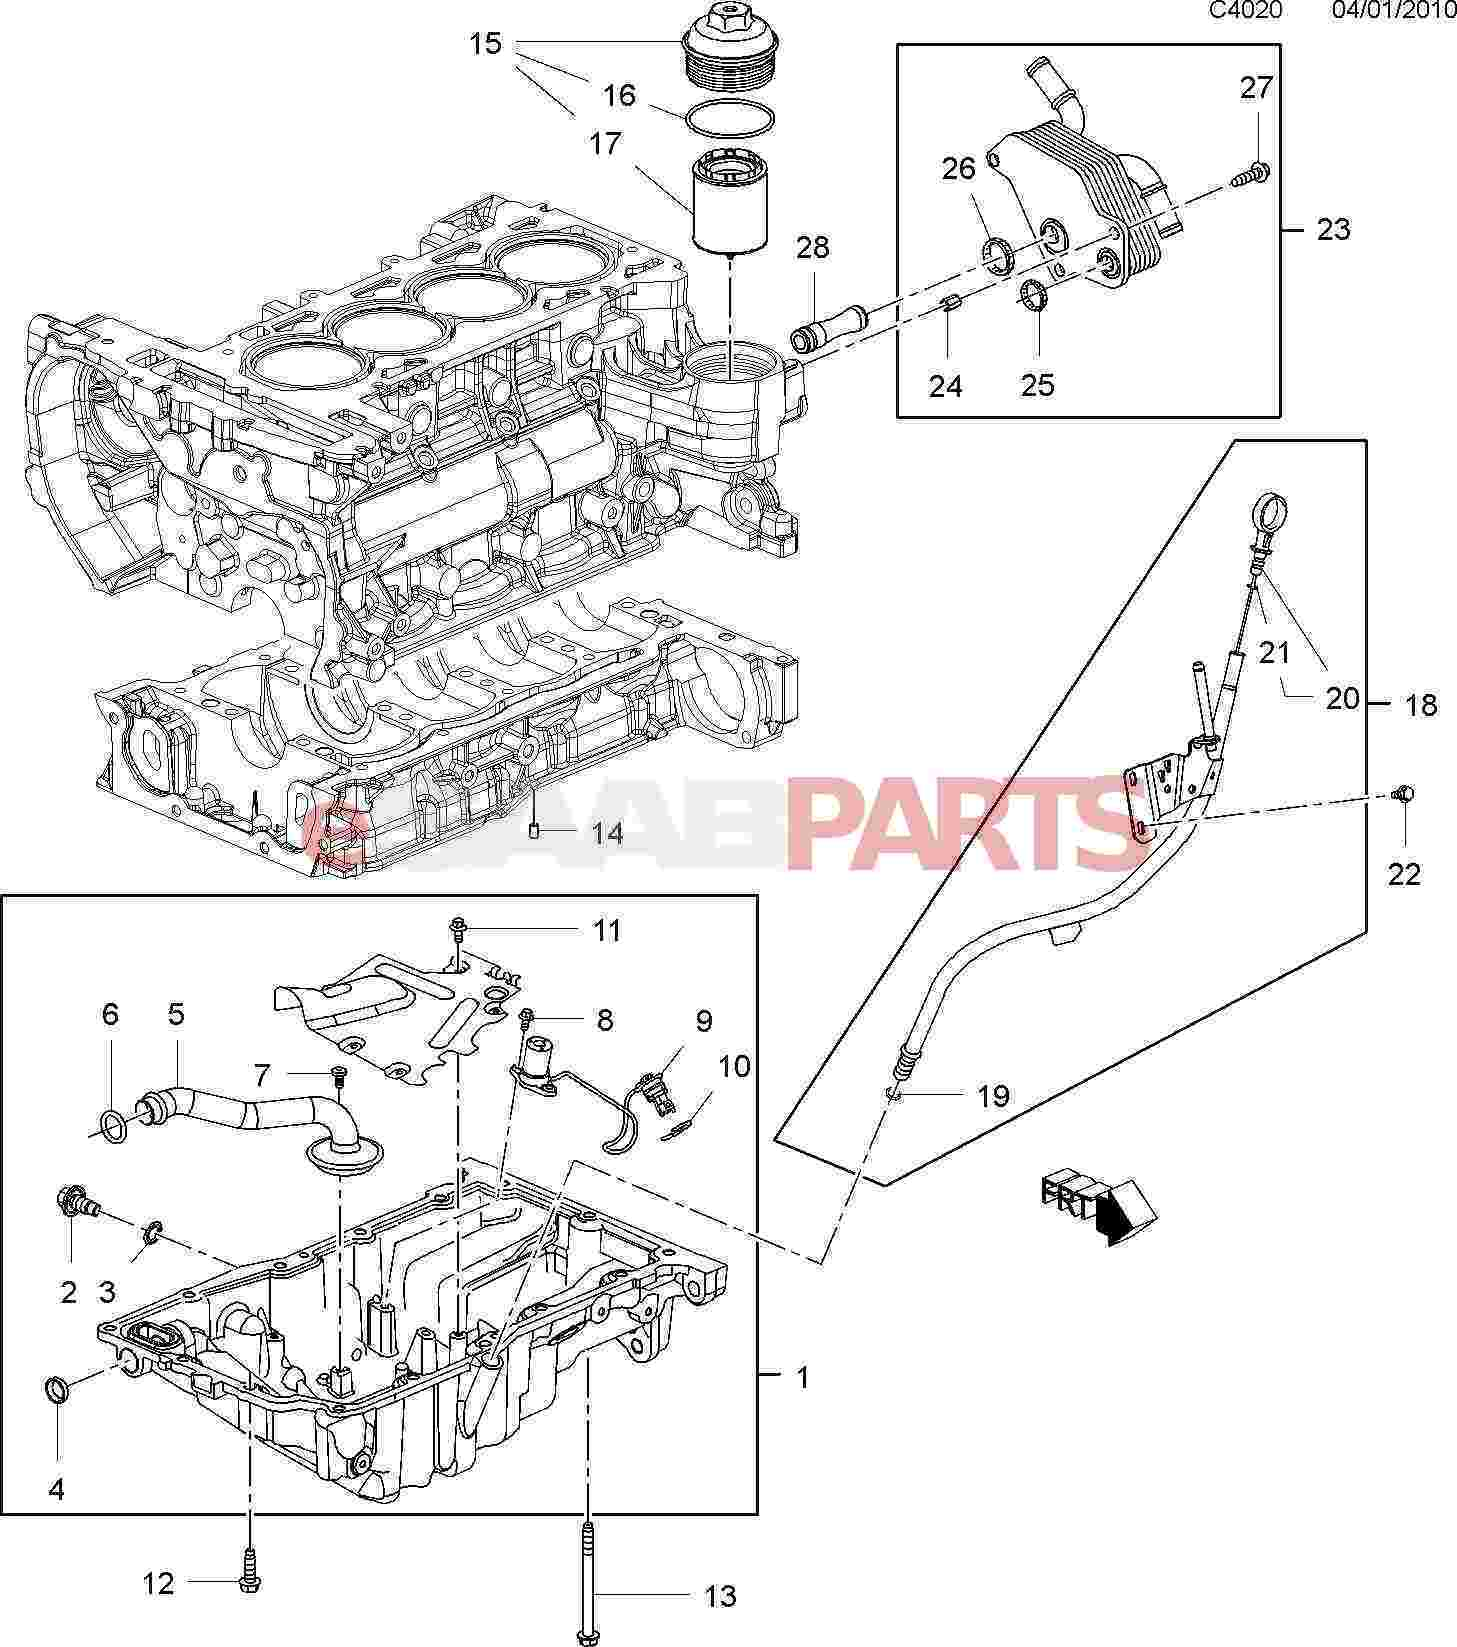 24461500 saab level sensor 2 0t genuine saab parts from esaabparts